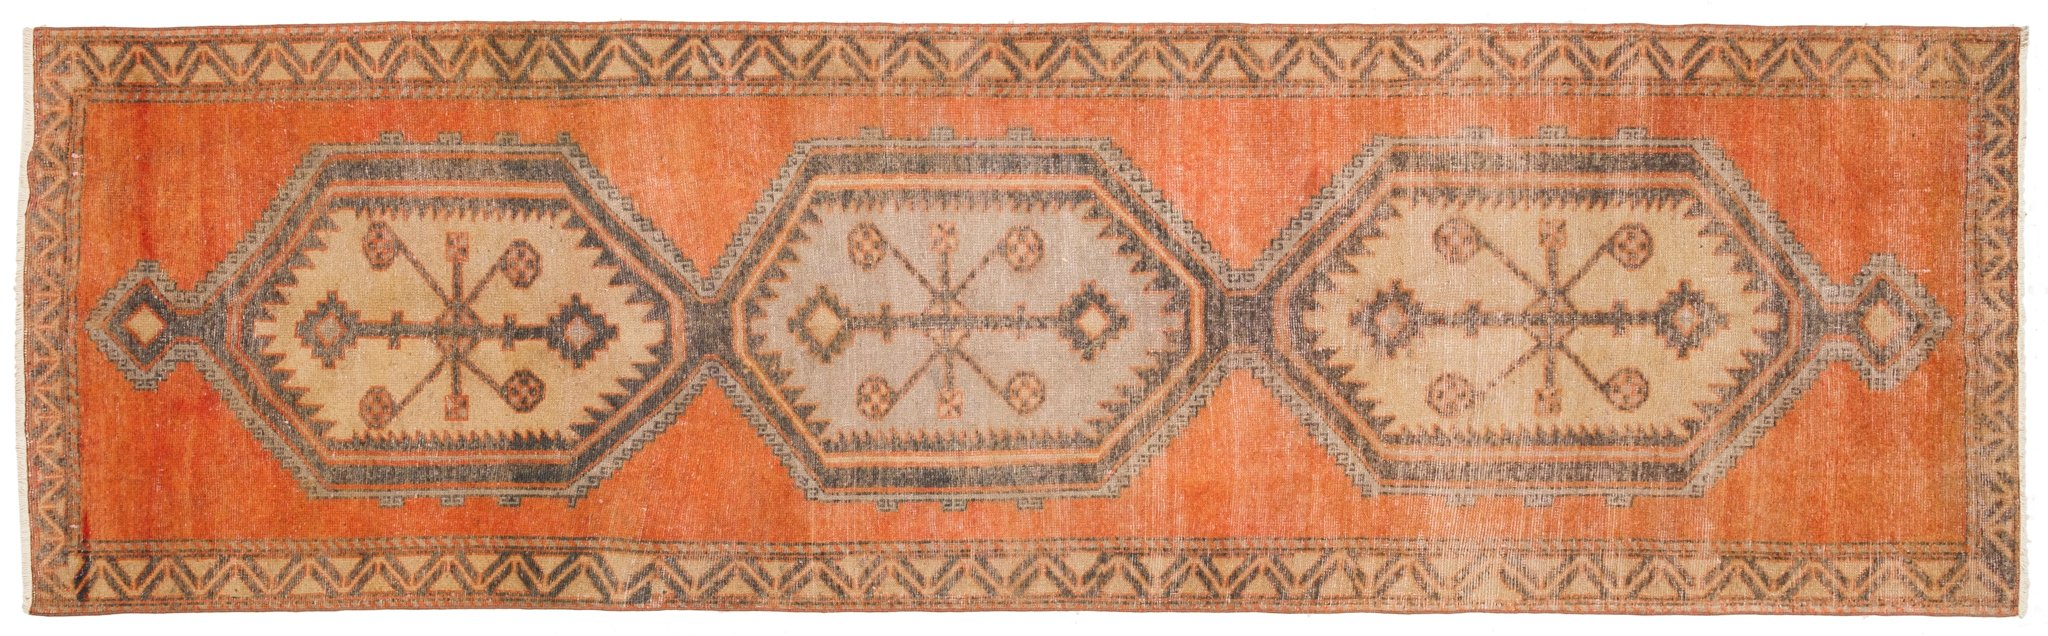 Vintage Turkish Runner Rug Aneliya